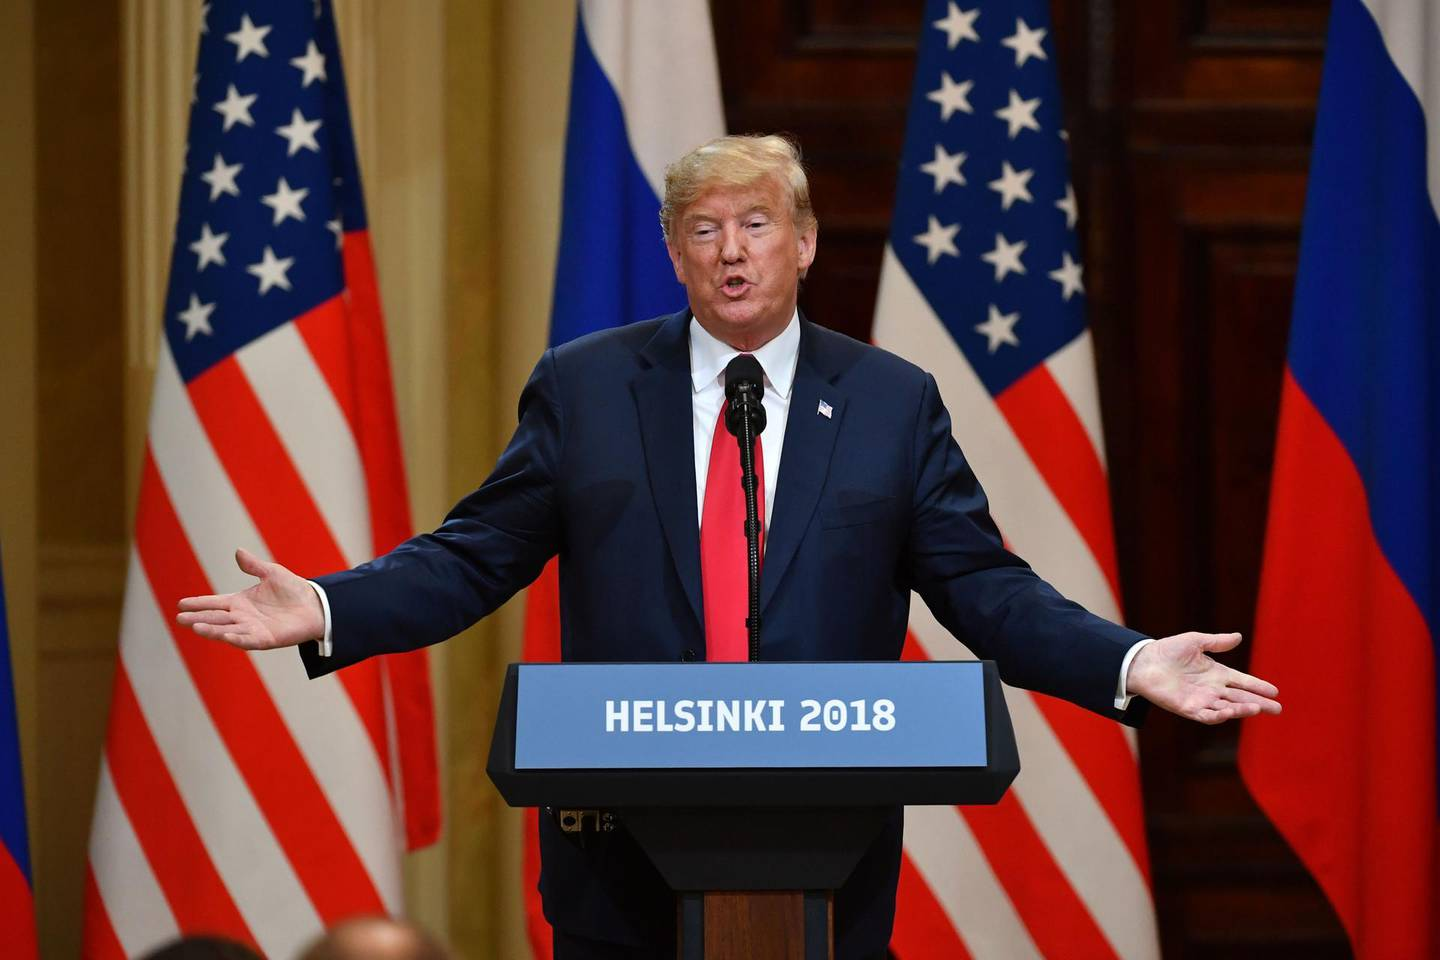 (FILES) In this file photo taken on July 16, 2018 US President Donald Trump speaks during a joint press conference with Russia's President after a meeting at the Presidential Palace in Helsinki. Finnish social media users reacted with derision on June 18, 2020 to the claim that US President Donald Trump questioned whether their country was still a part of neighbouring Russia ahead of his 2018 visit to Helsinki for talks with President Vladimir Putin.  / AFP / Yuri KADOBNOV